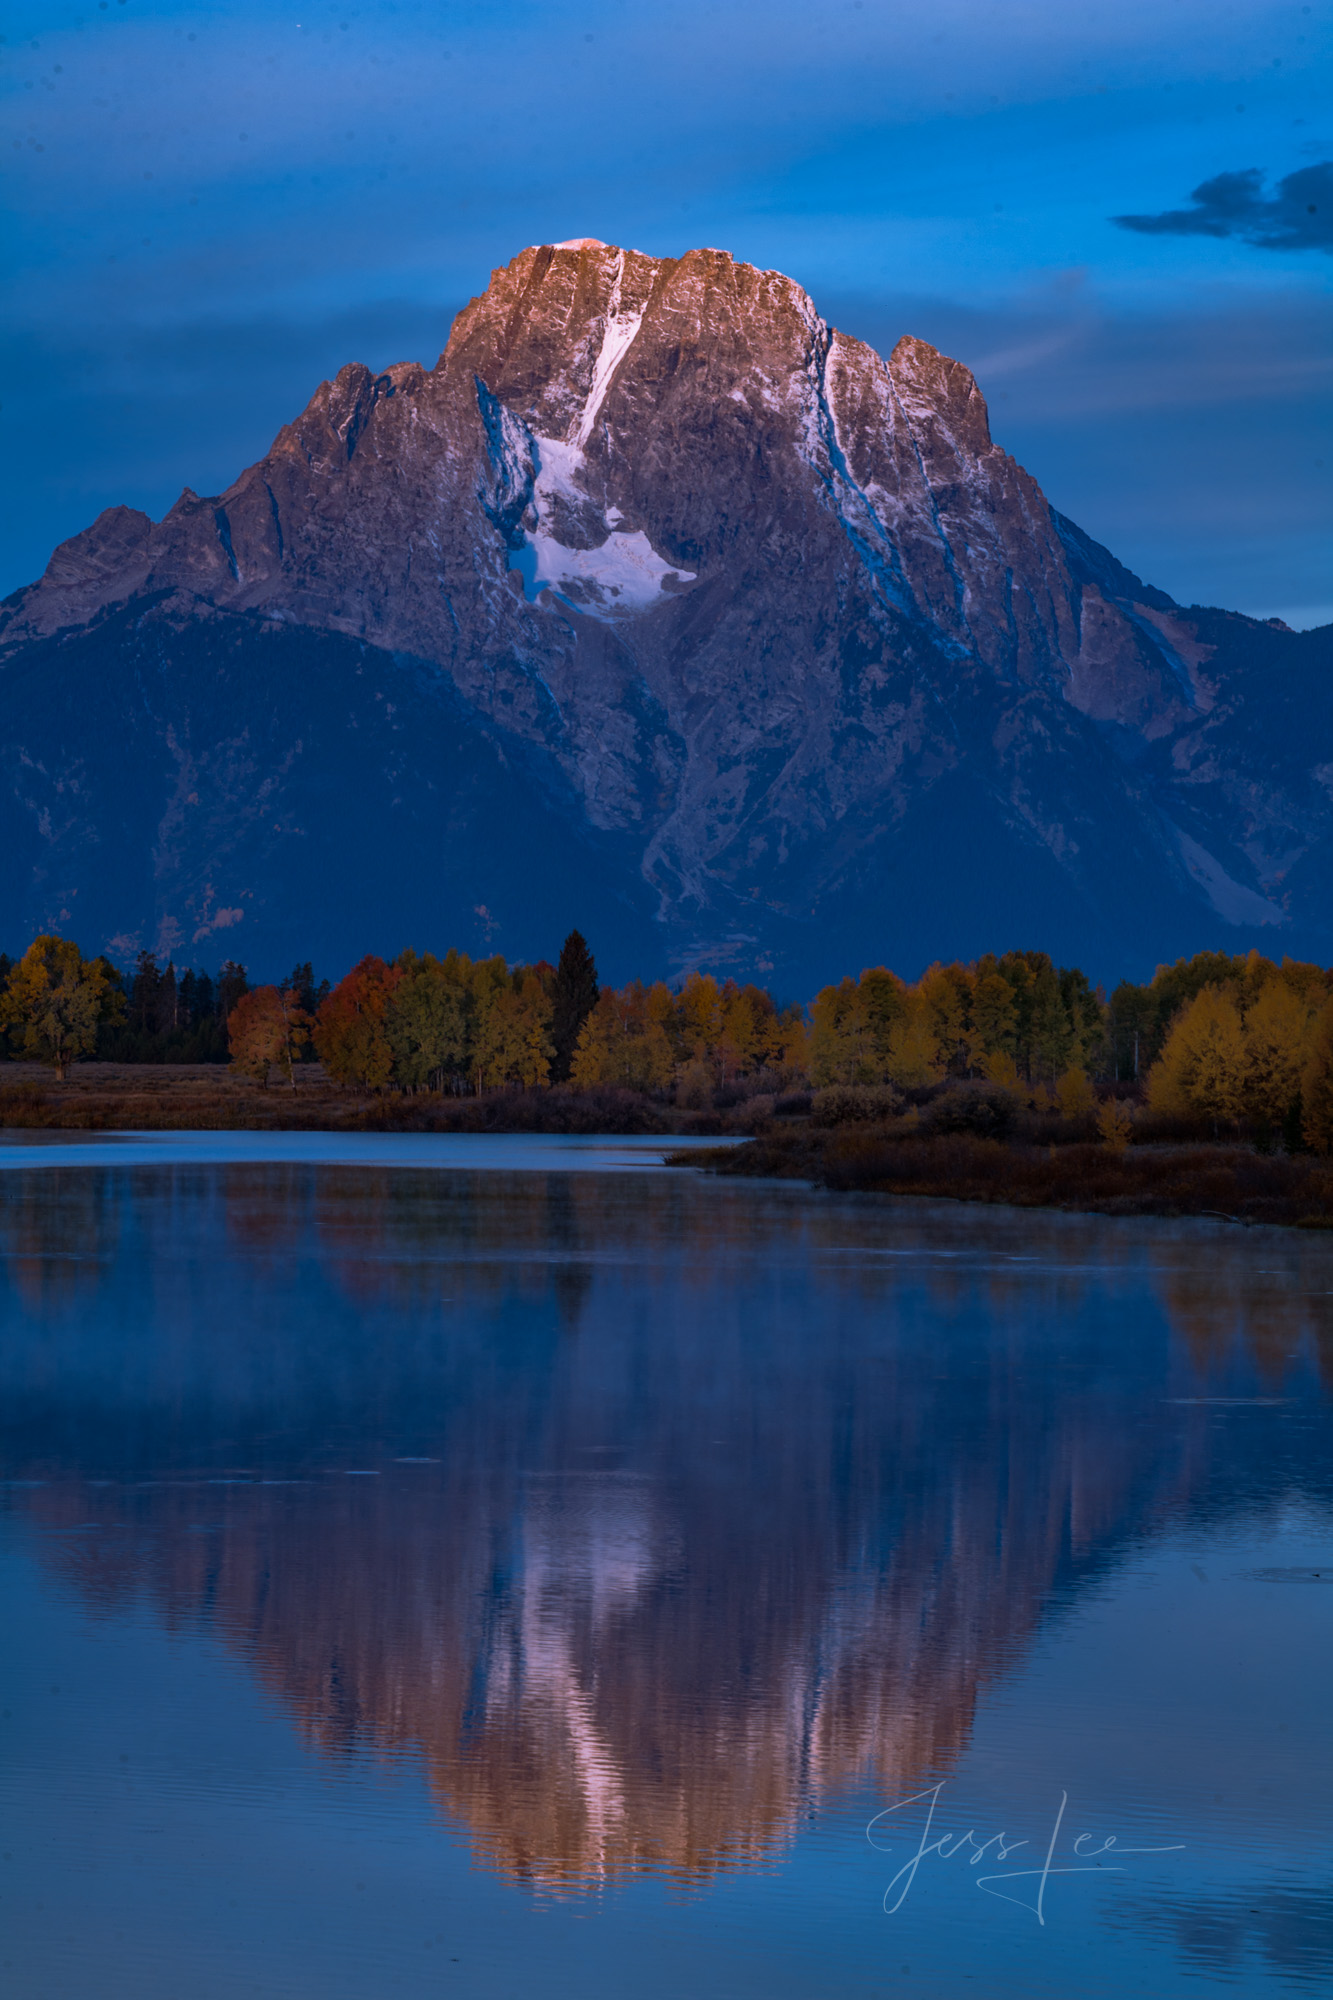 Photograph of Grand Tetons in Wyoming, autumn, color, fall, mountains, national park, wyoming, adventure, photography in mountains, mountain reflection, lake, water, photo